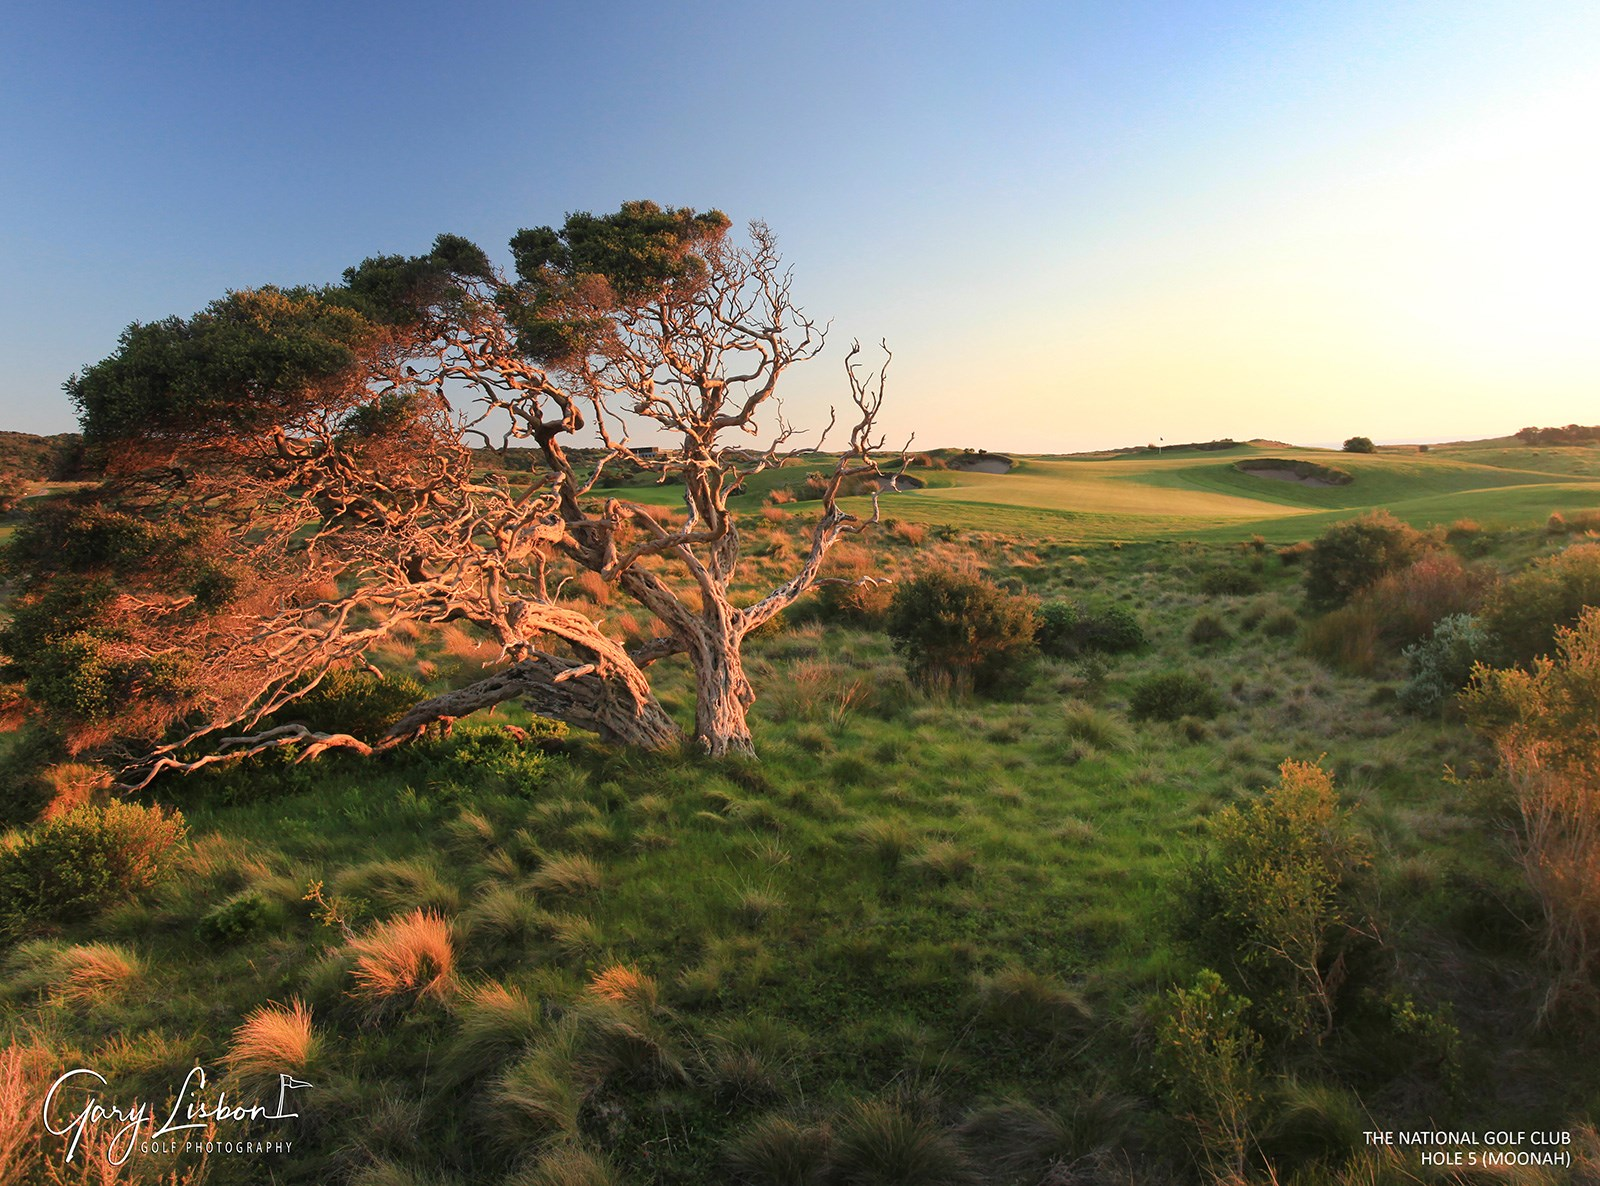 The National Golf Club (Moonah Course) Hole 5